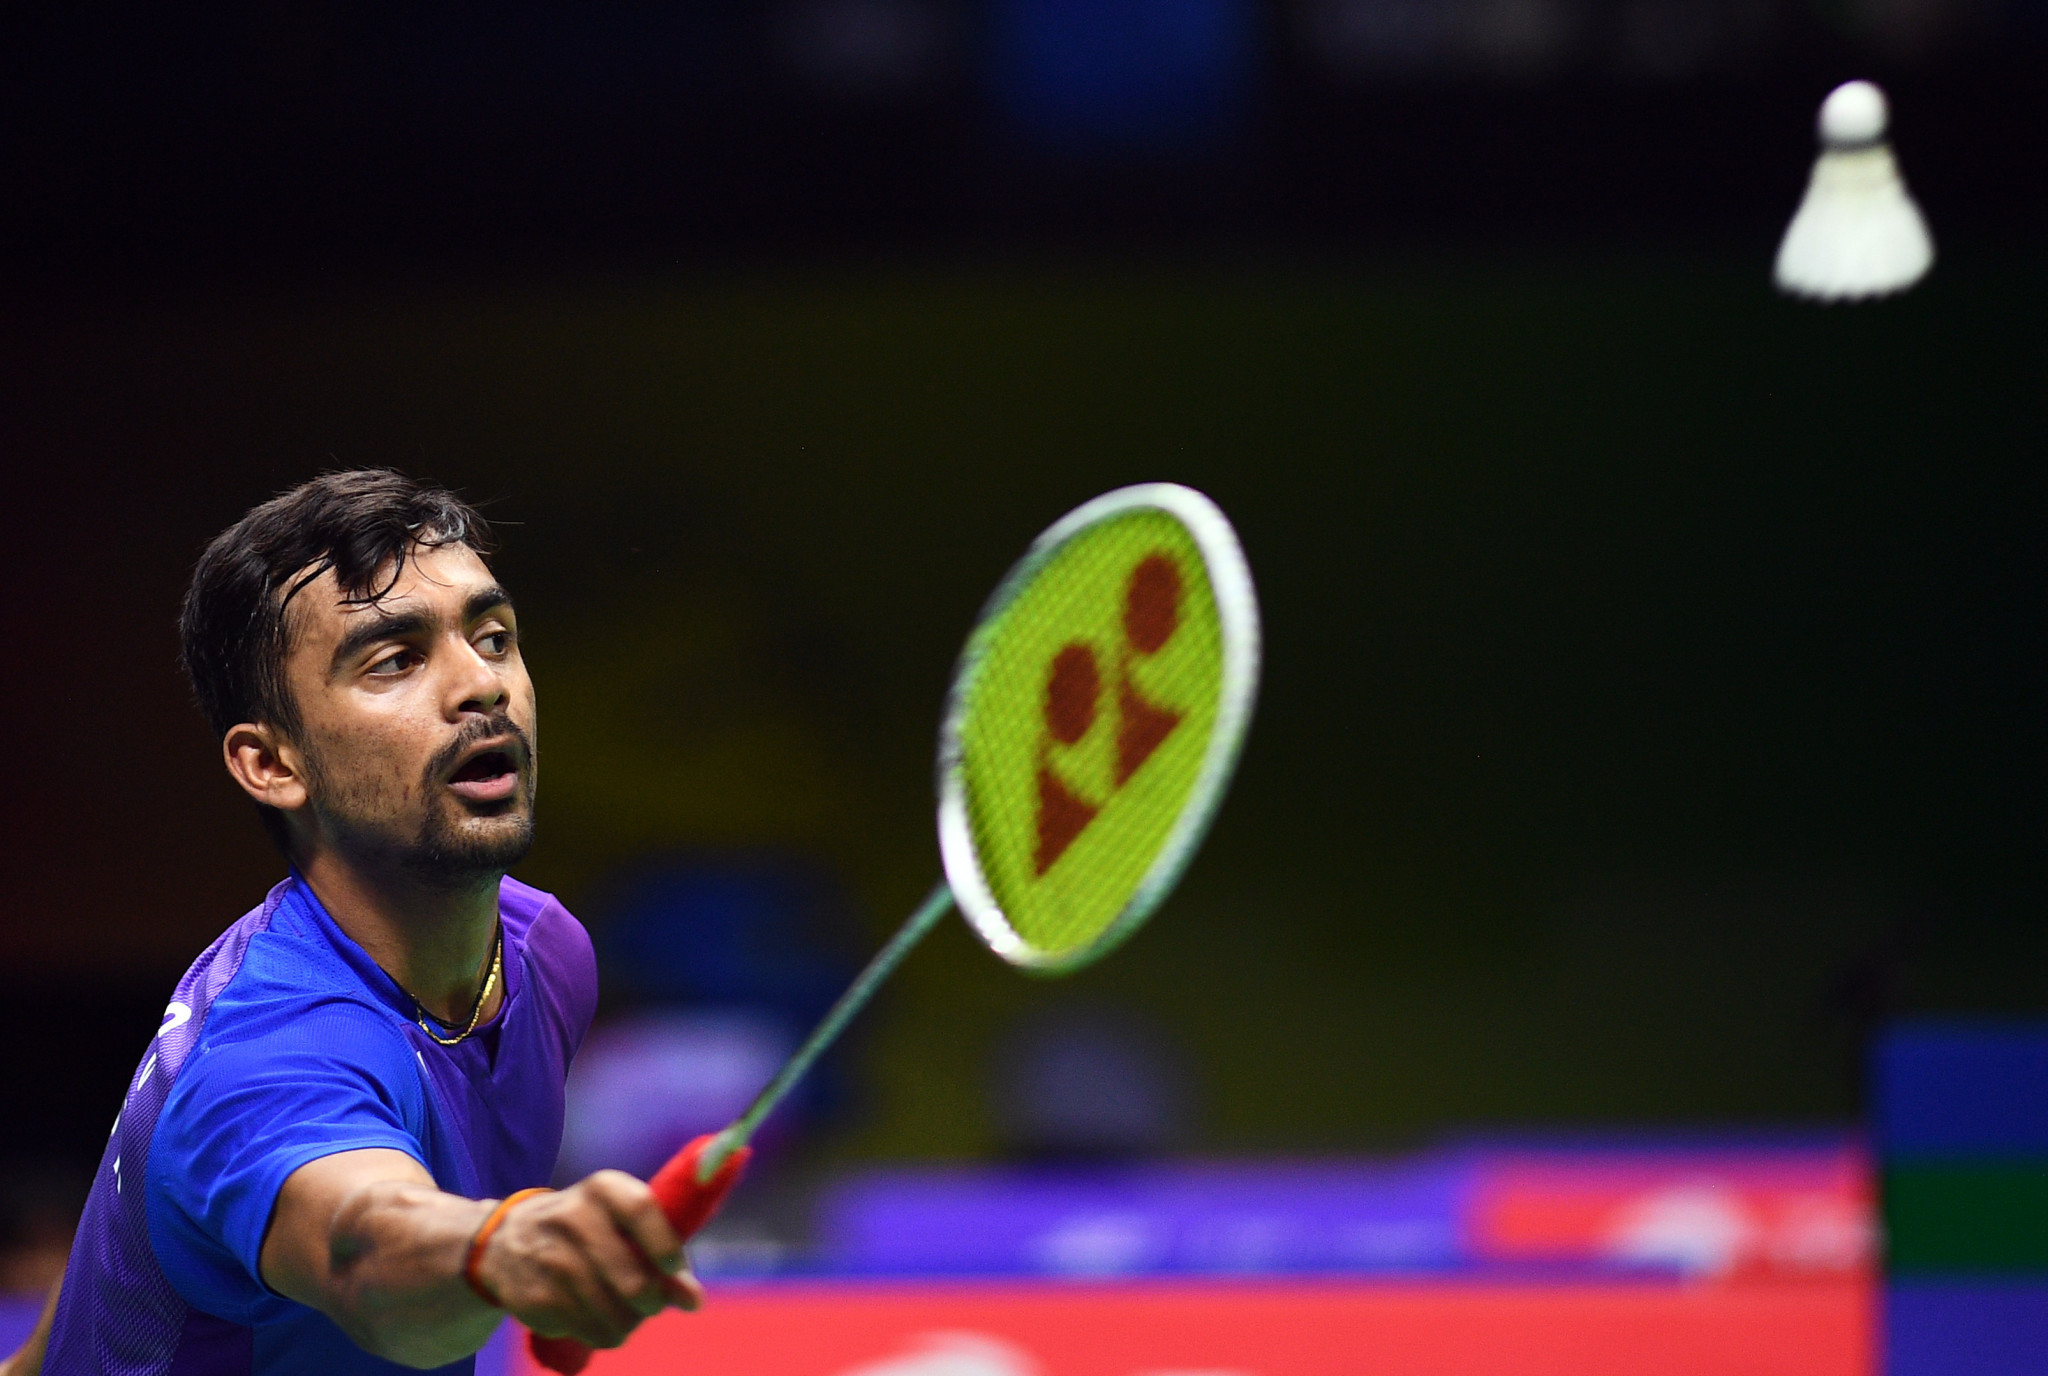 Top seed Sameer Verma will be favourite for a home Indian victory in the men's final ©Getty Images